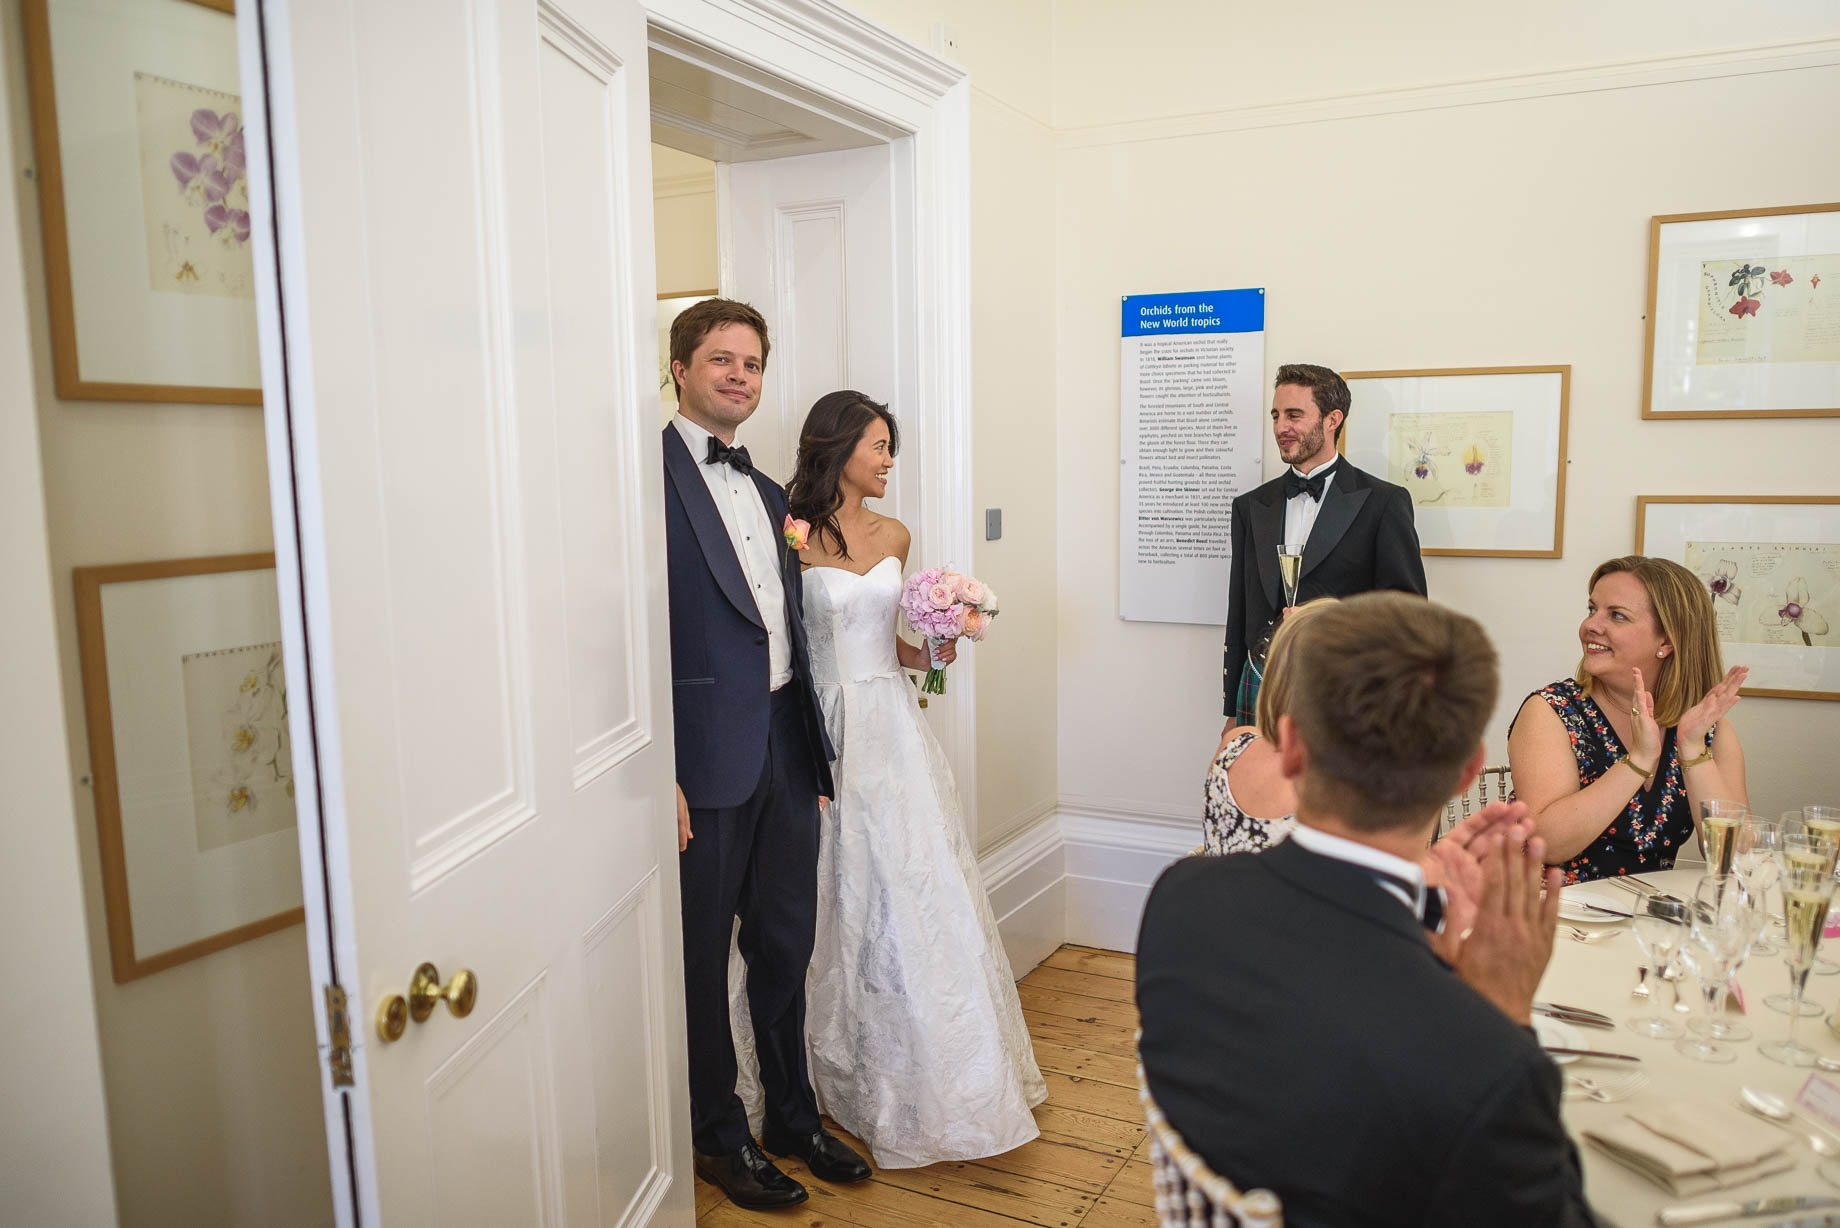 Kew Gardens wedding photography - Guy Collier Photography - Gloria and Frederik (107 of 173)